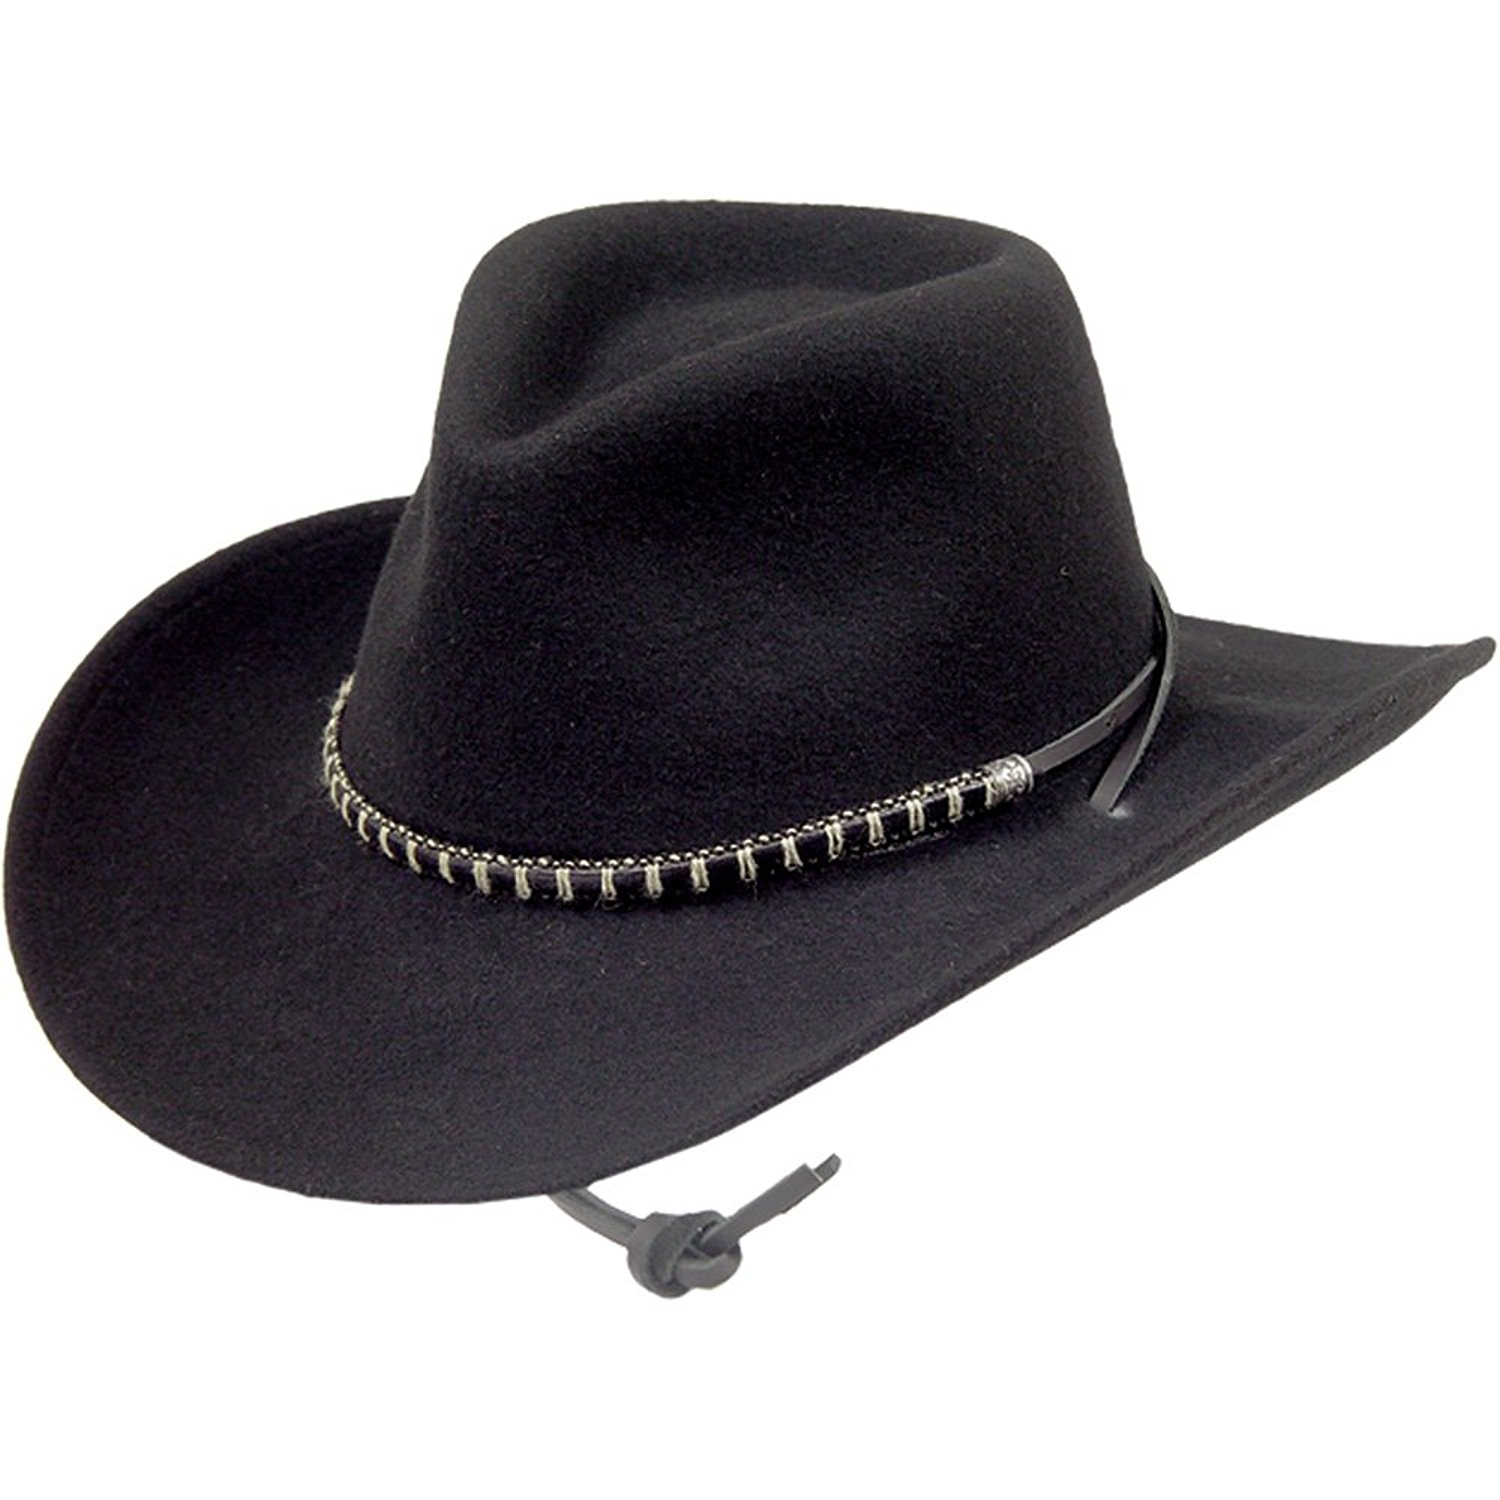 6c5d10a69b4 Get Quotations · Stetson Black Foot Crushable Hat